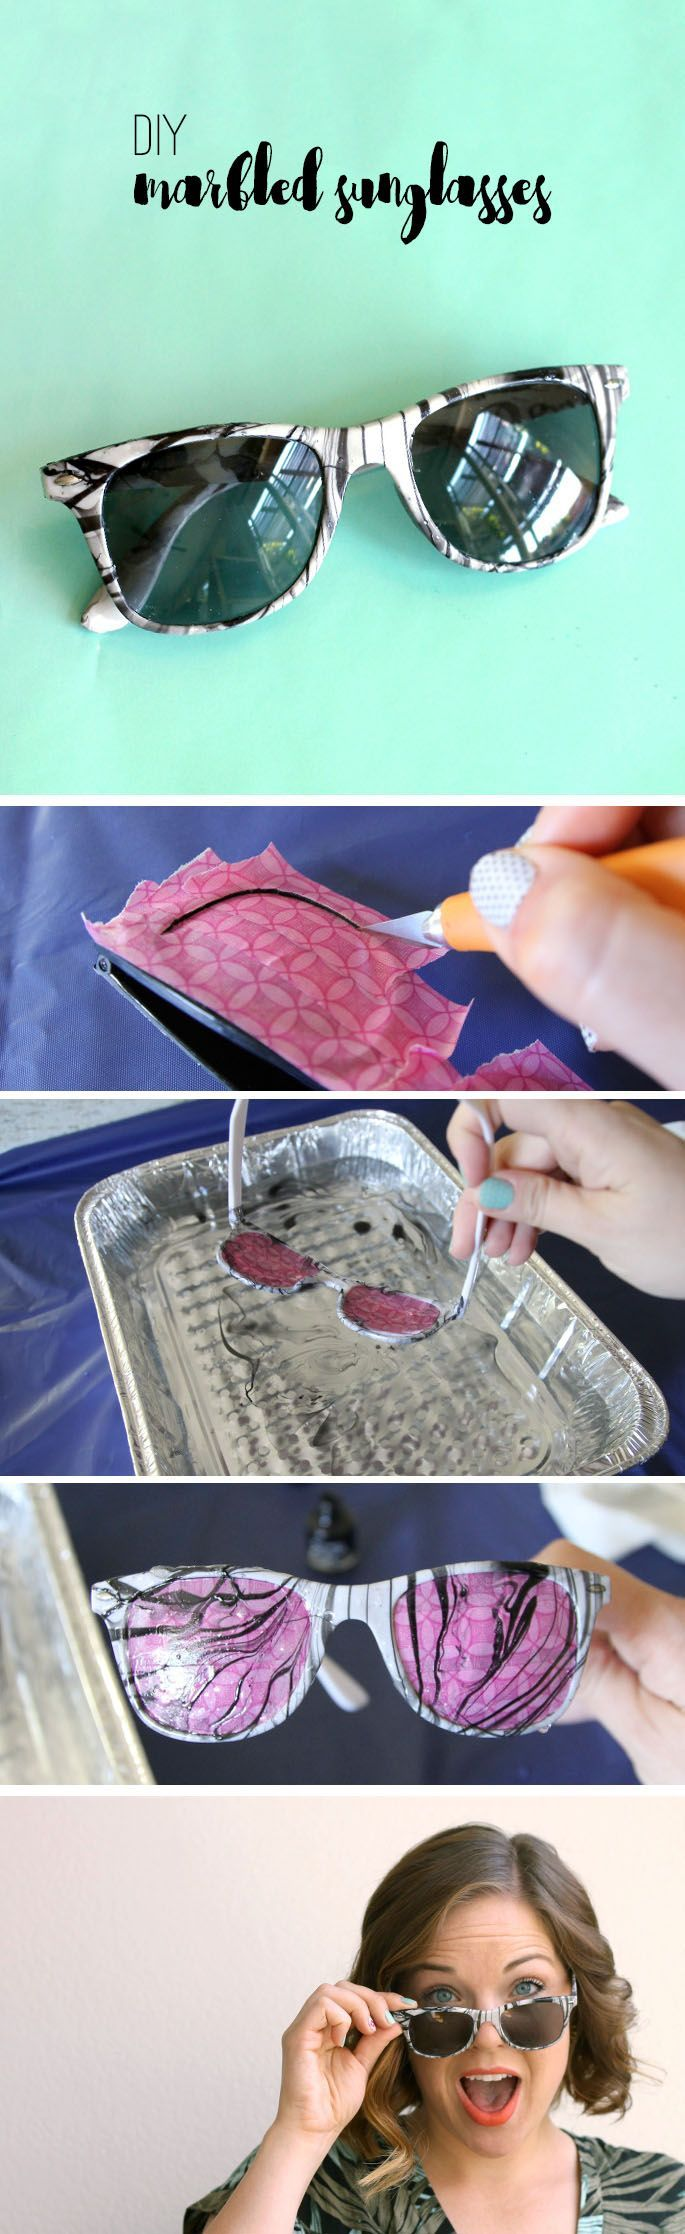 make your own DIY Marbled Sunglasses - so easy and fun